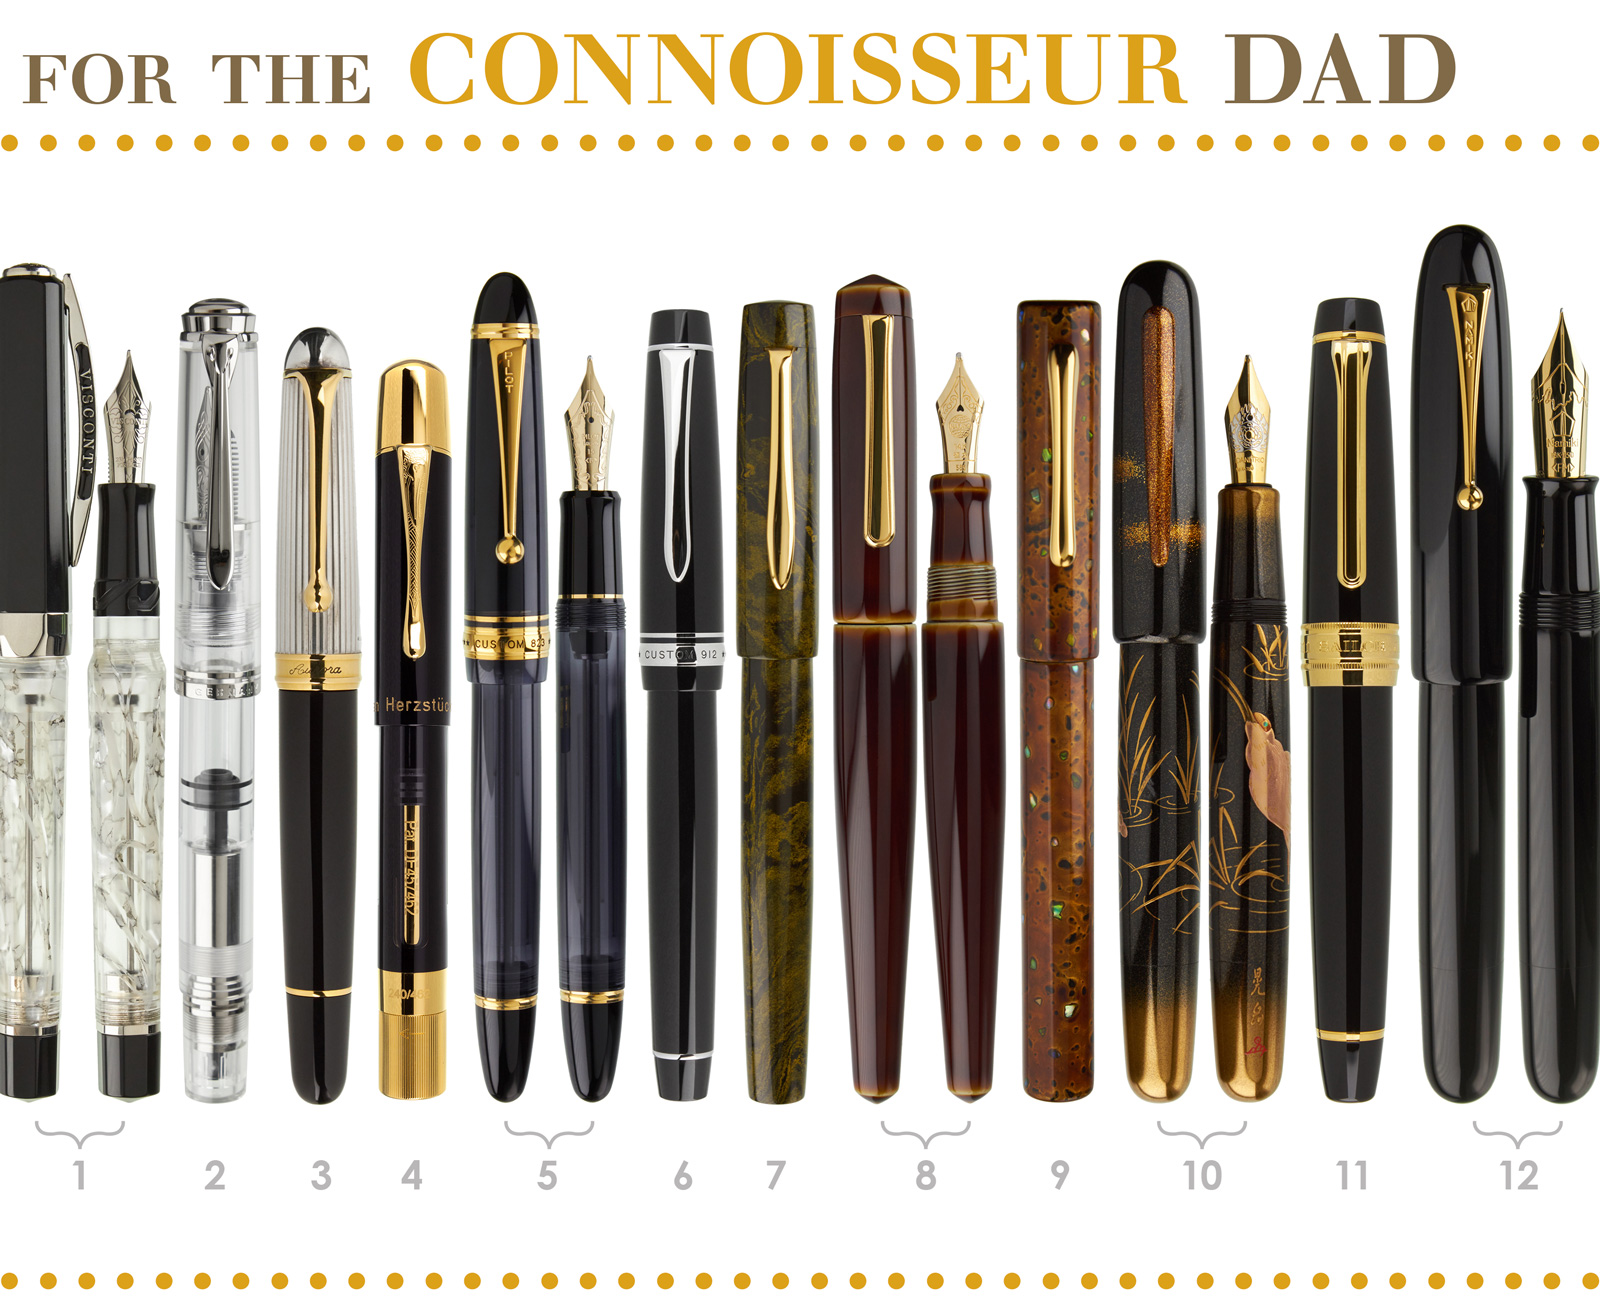 Pen Collection 3: For the Connoisseur Dad